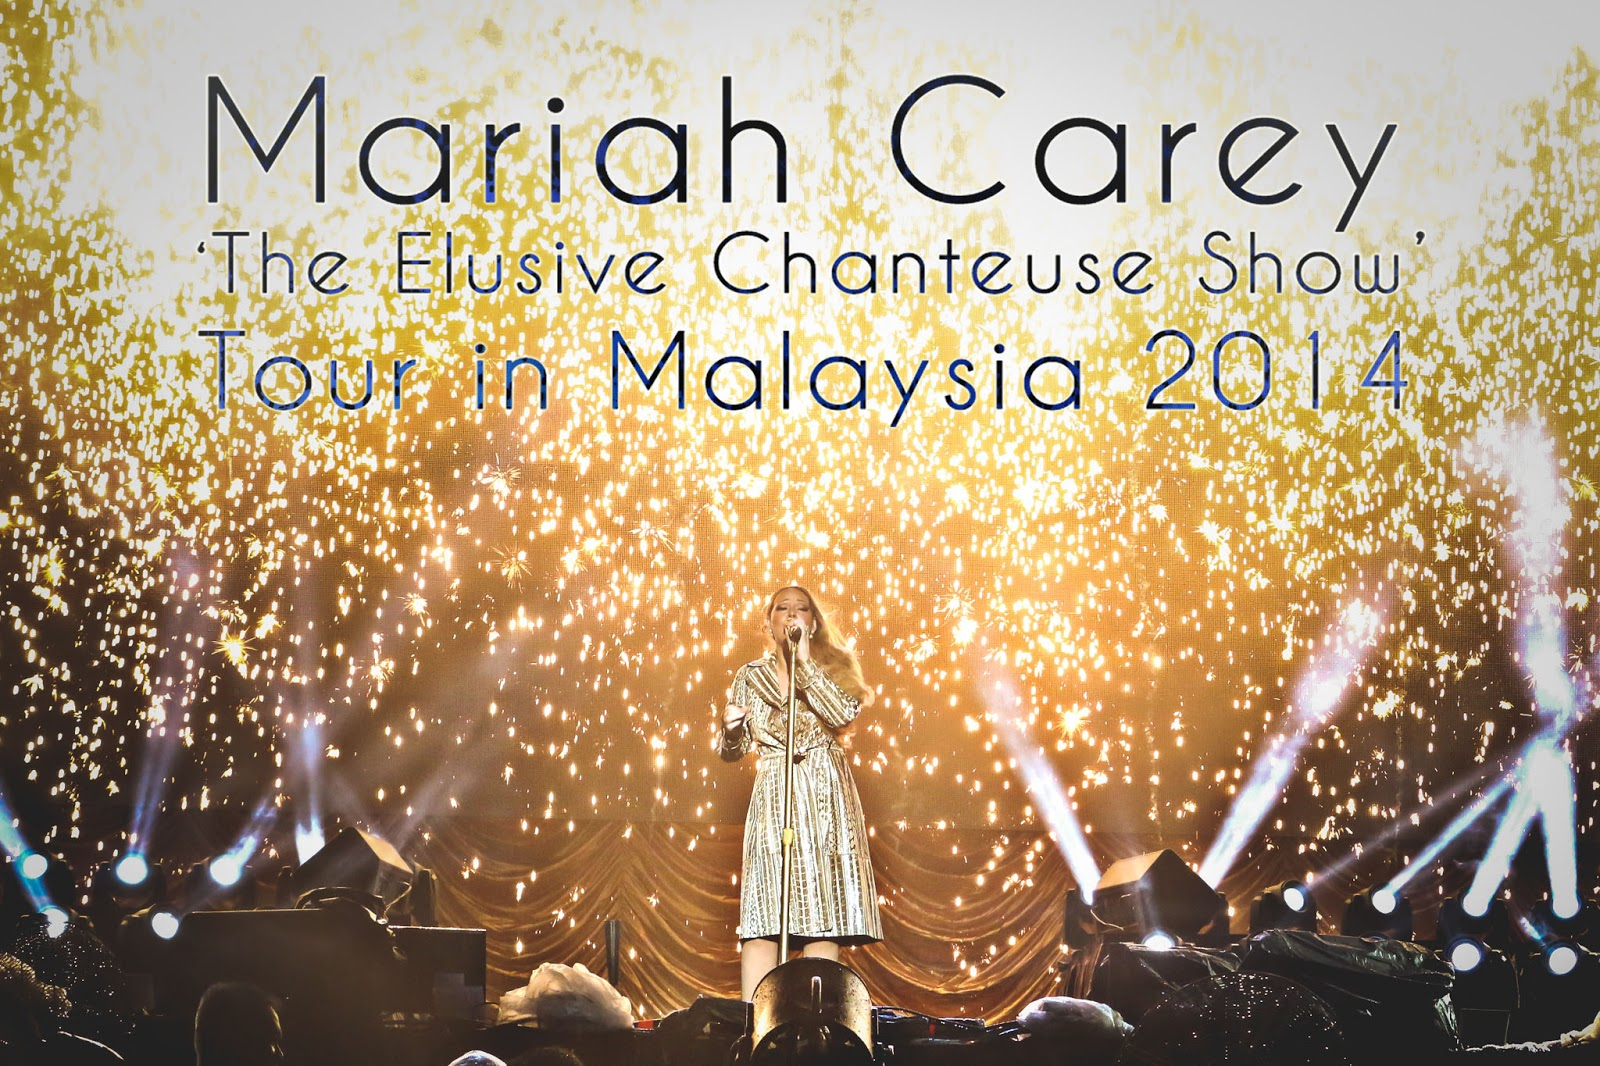 [Photo] Mariah Carey 'The Elusive Chanteuse Show' Tour in Malaysia 2014 #MariahCarey